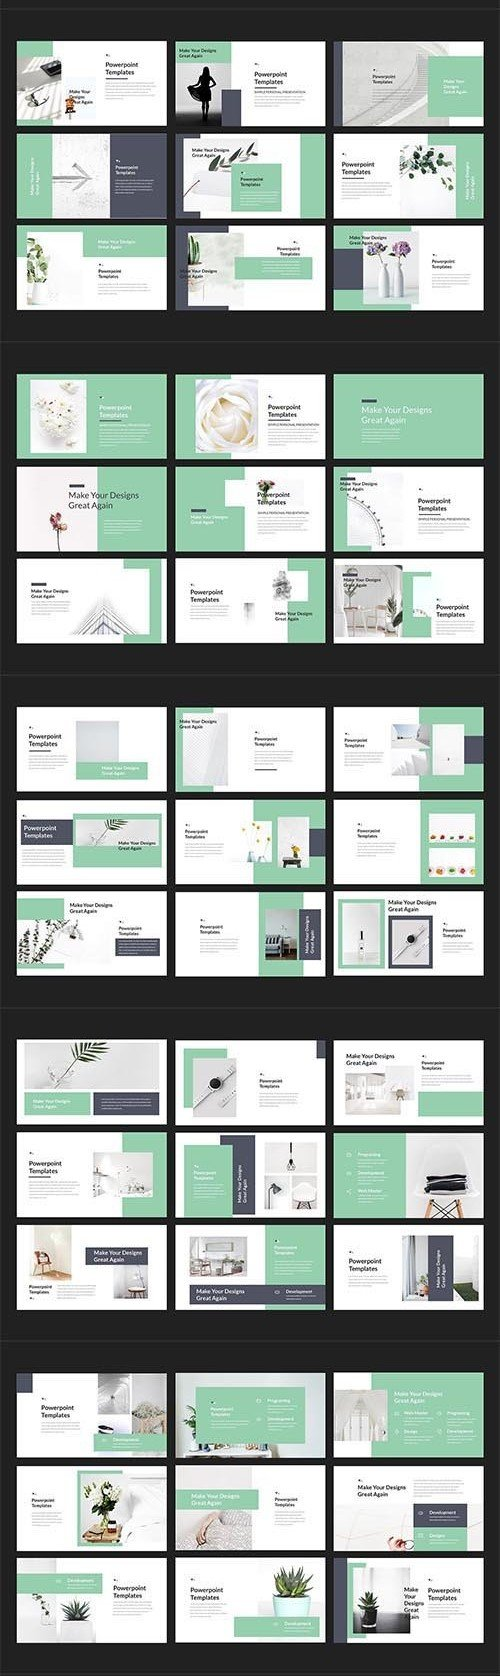 CreativeMarket - Thita Lookbook Powerpoint Templates 2982524